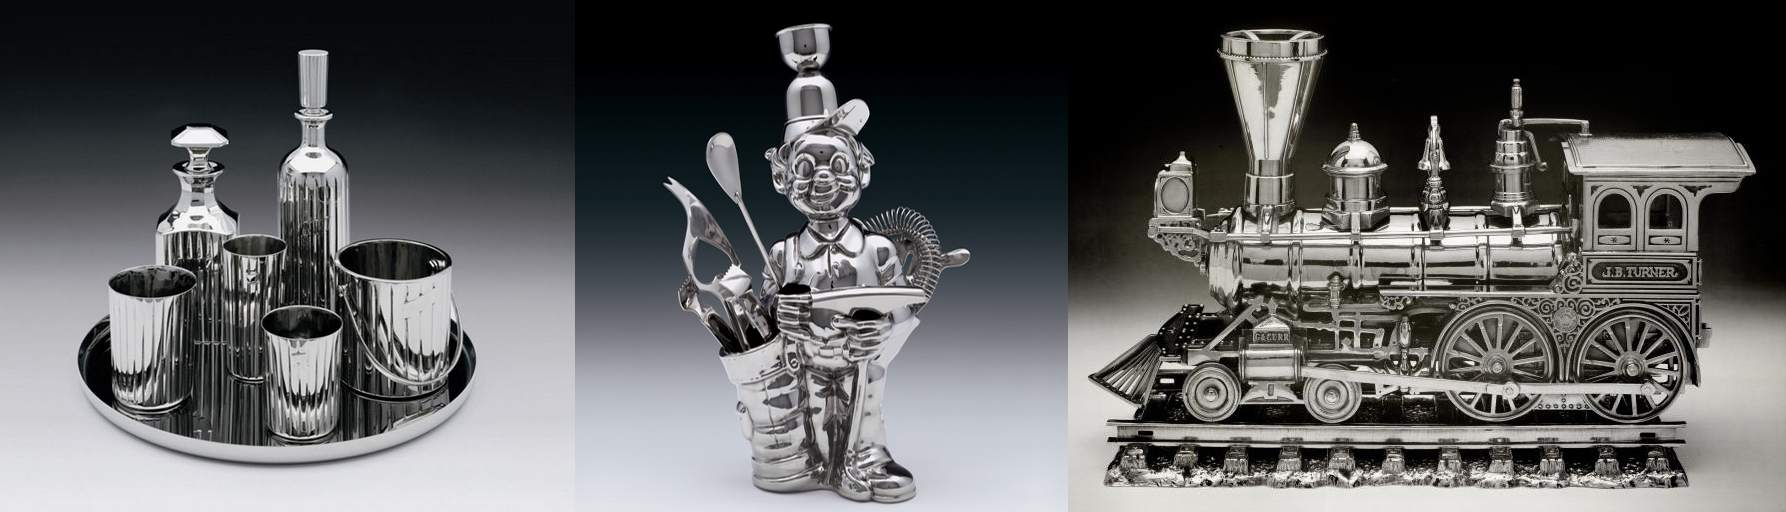 Jeff Koons-Luxury And Degradation (Baccart Crystal, Fisherman Golfer, J.B. Turner Engine)-1986